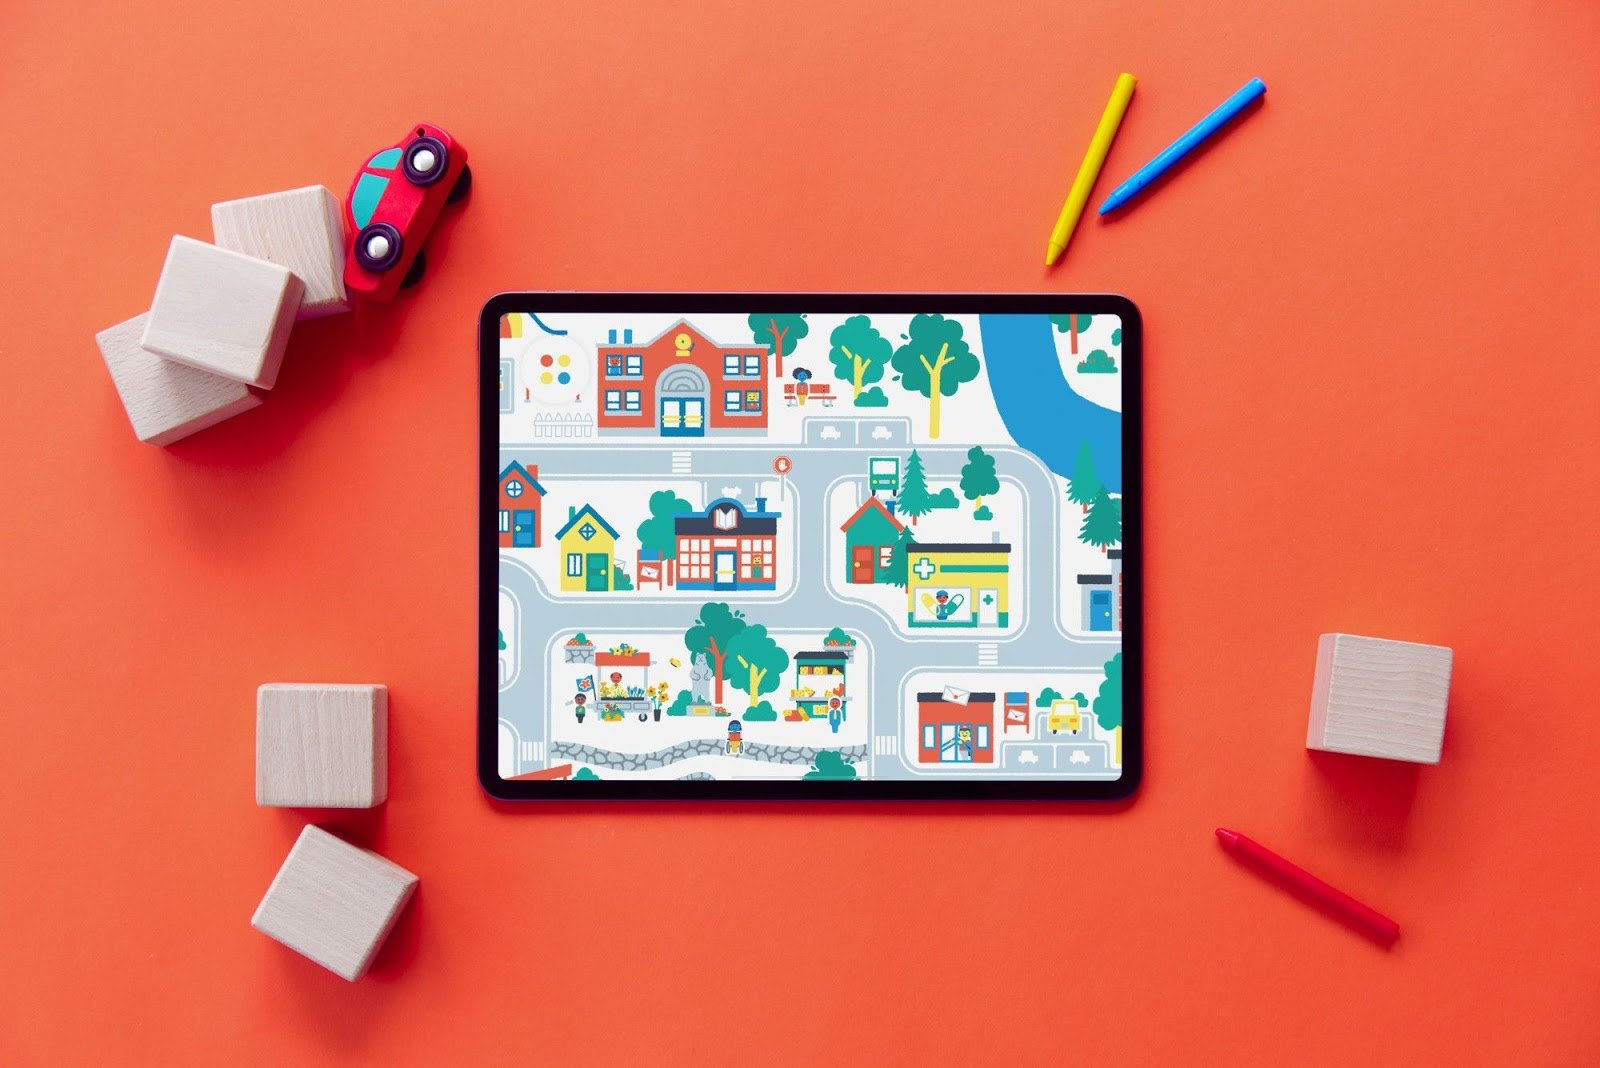 Apple Design Award Winners: Check Out these Apps